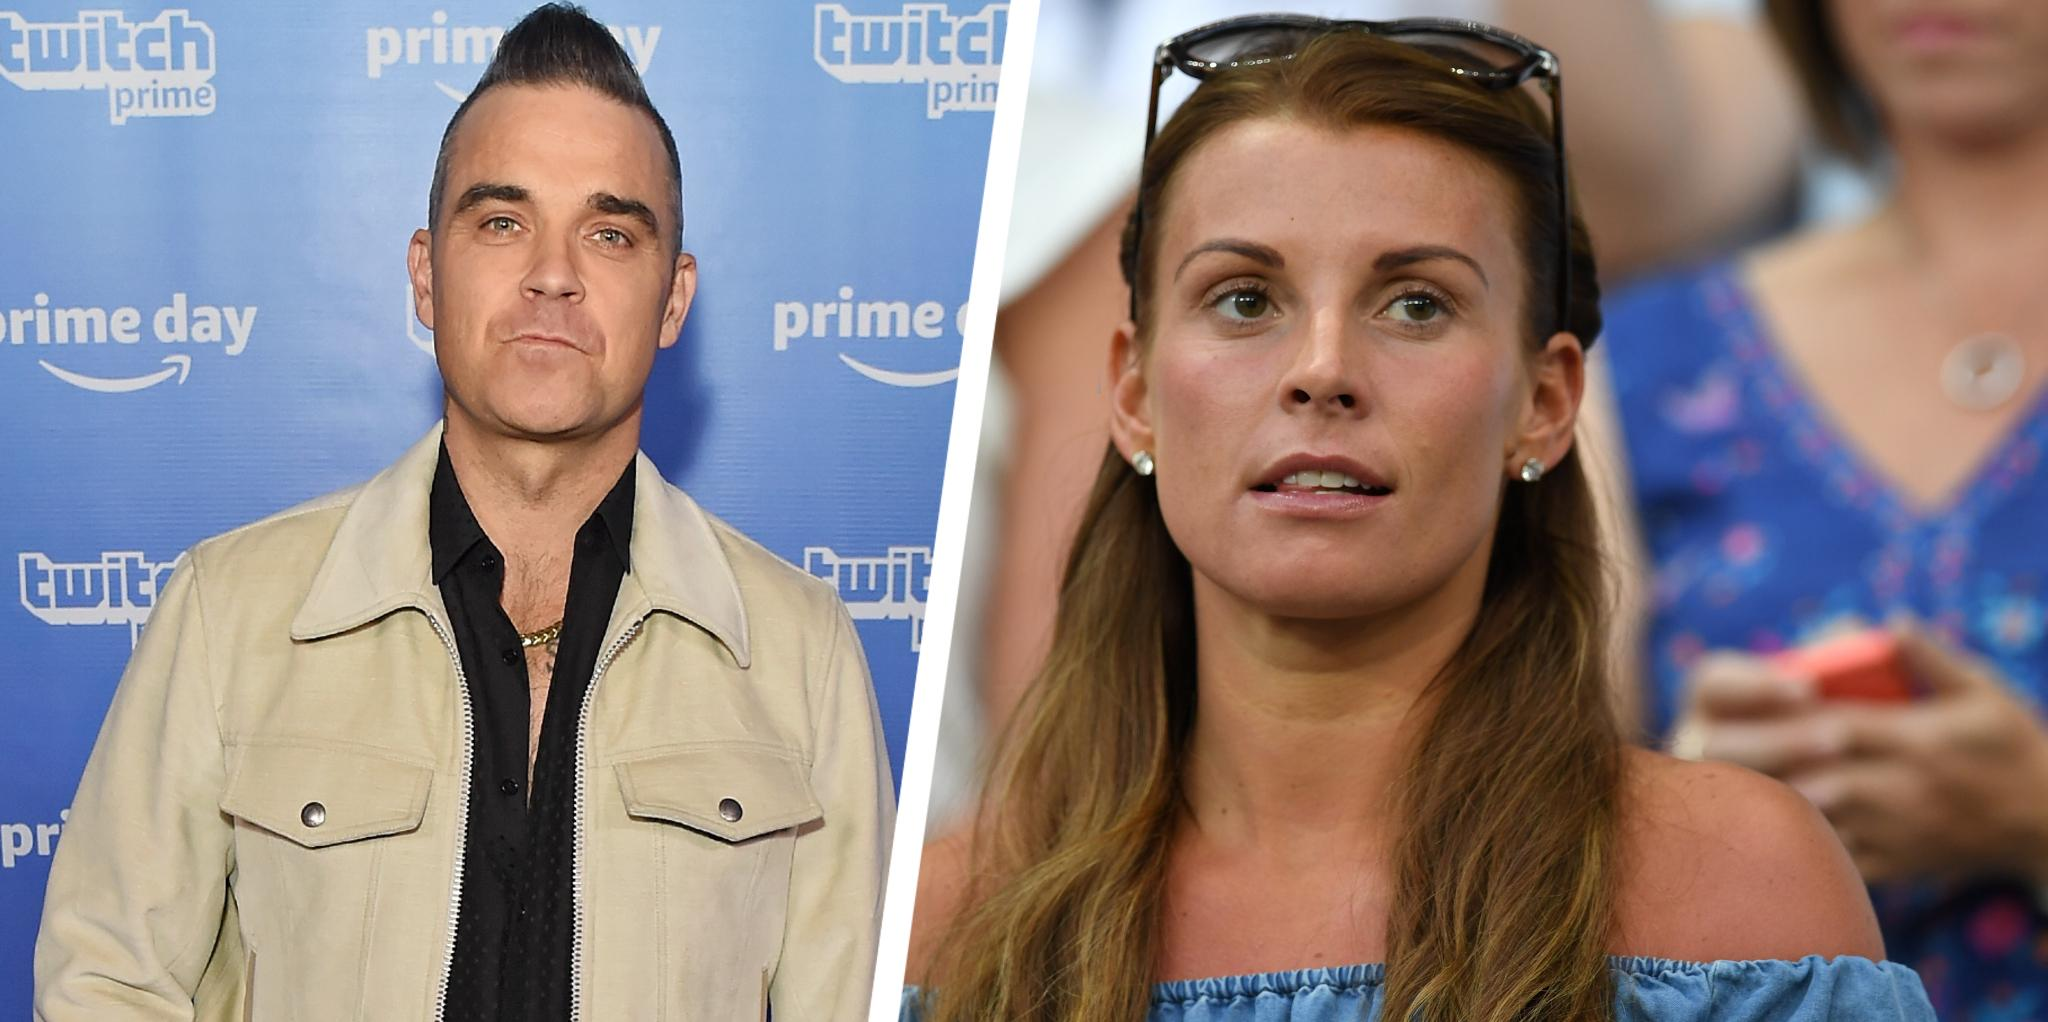 Robbie Williams slams 'dangerous' Coleen Rooney for publicly exposing Rebekah Vardy